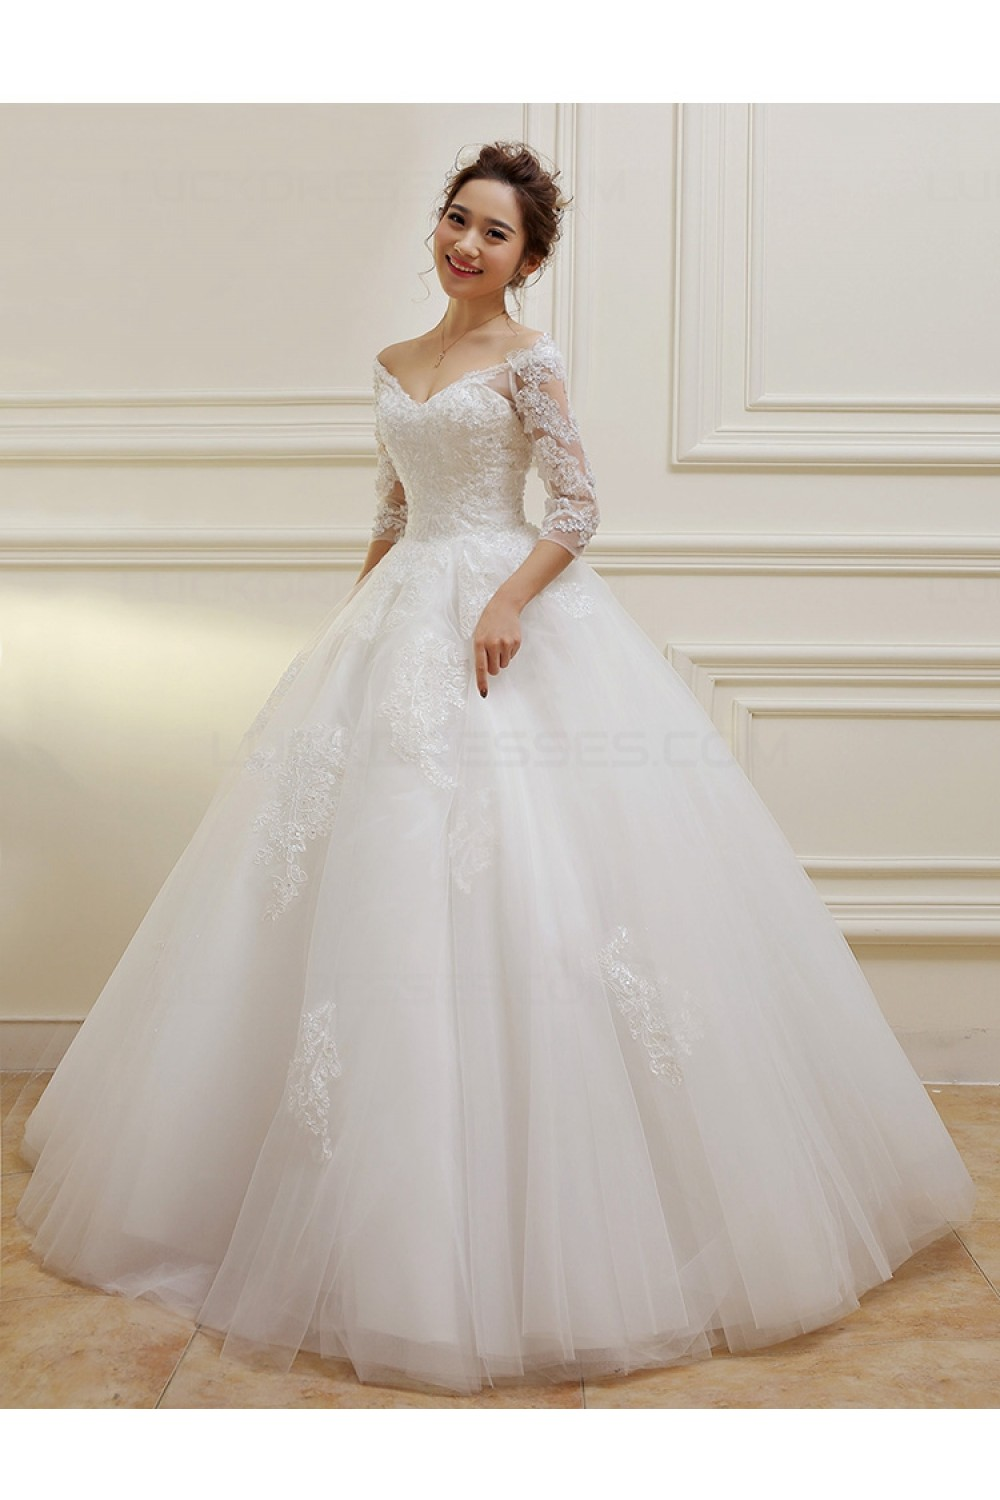 wedding dresses with 3 4 sleeves photo - 1